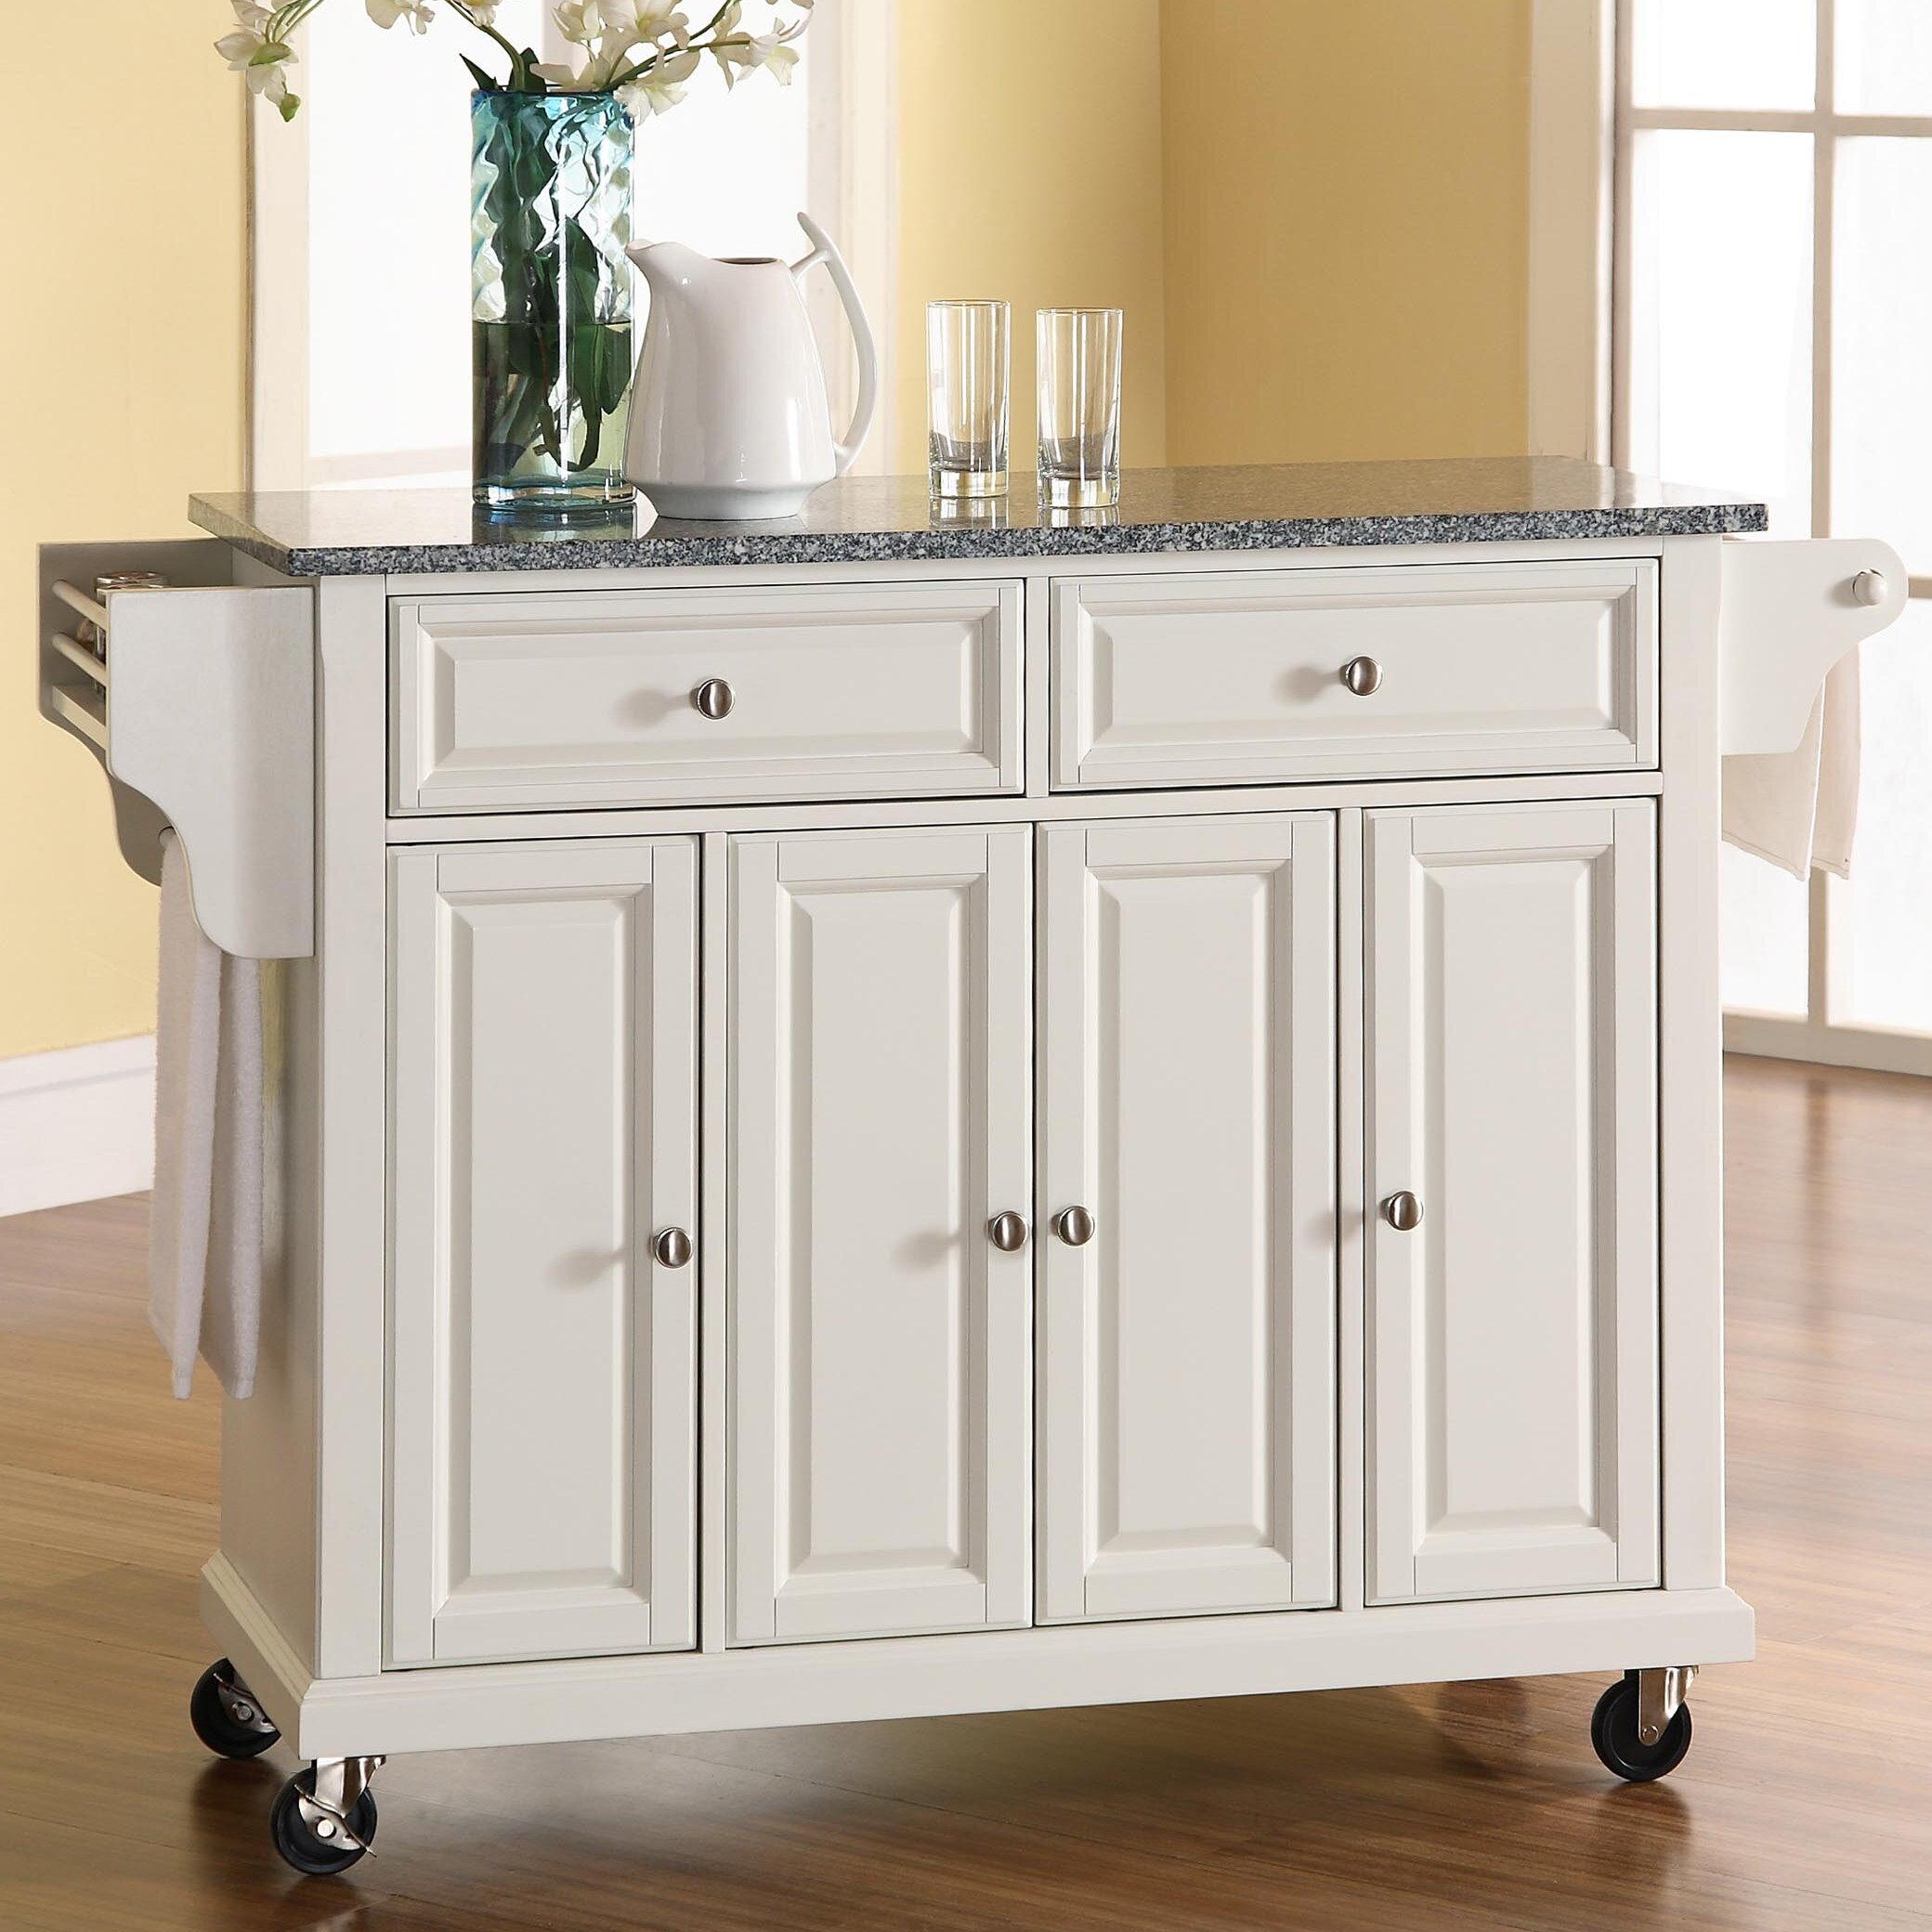 Darby Home Co Pottstown Kitchen Cart/Island with Granite Top ...